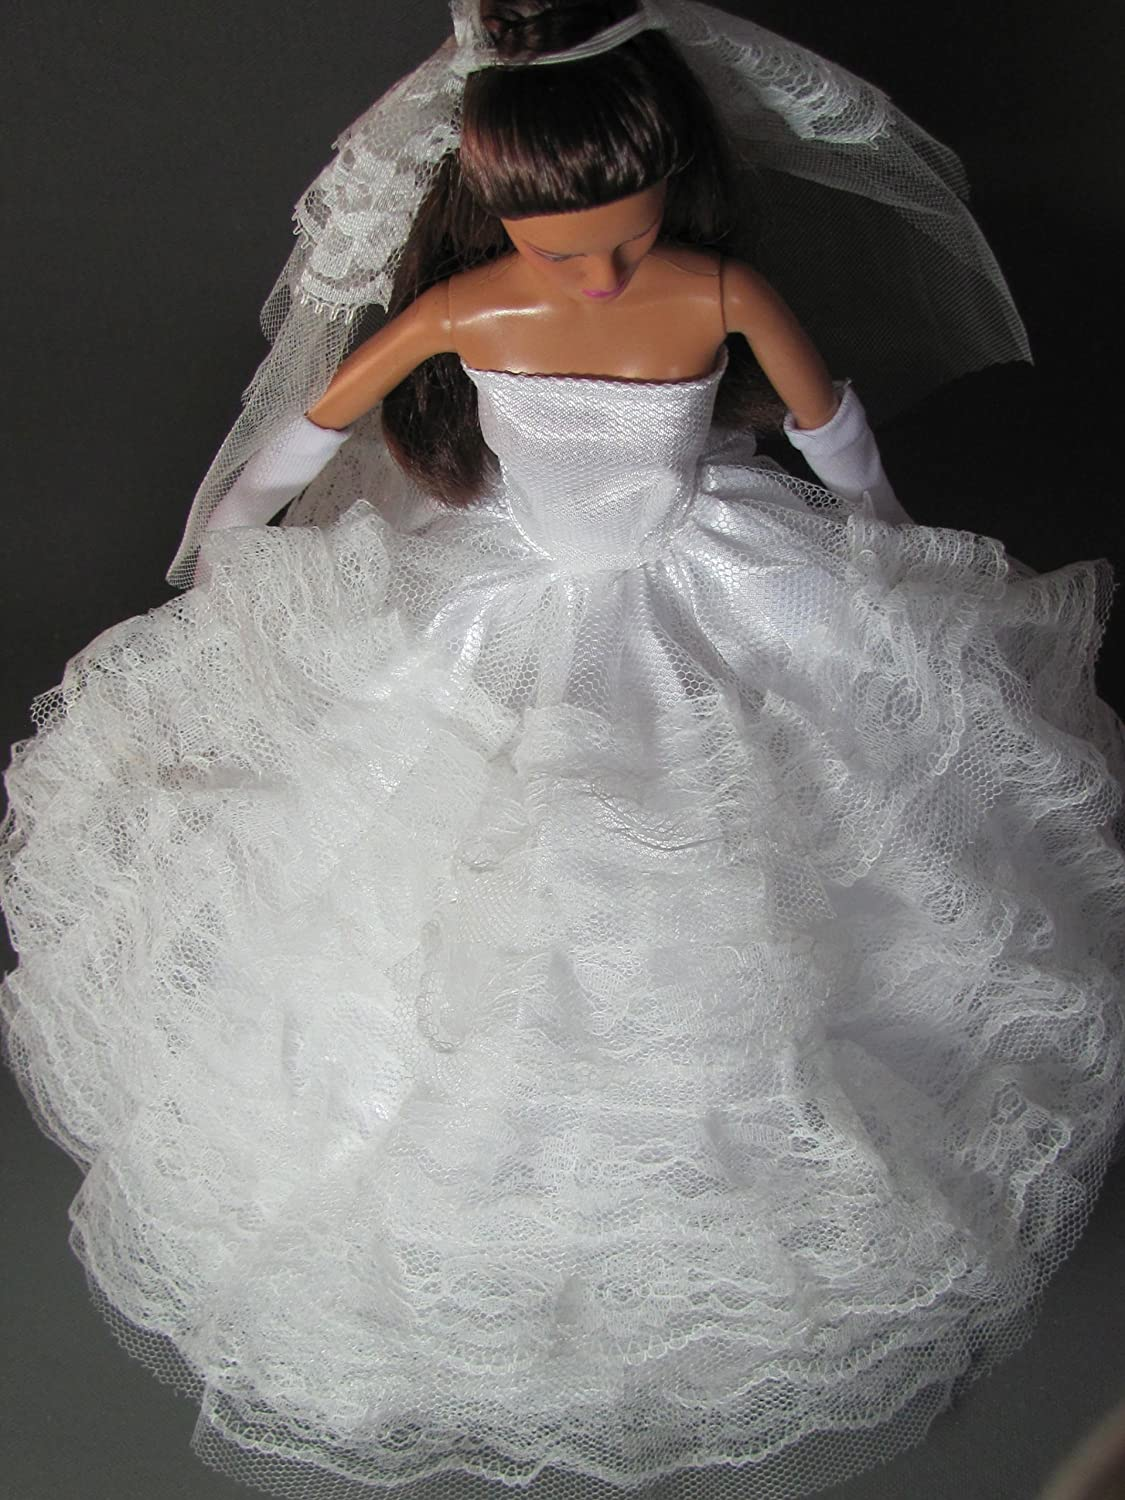 Veil Princess Details about  /Clothes for Barbie Doll White Wedding Lace Dress Layered Gown